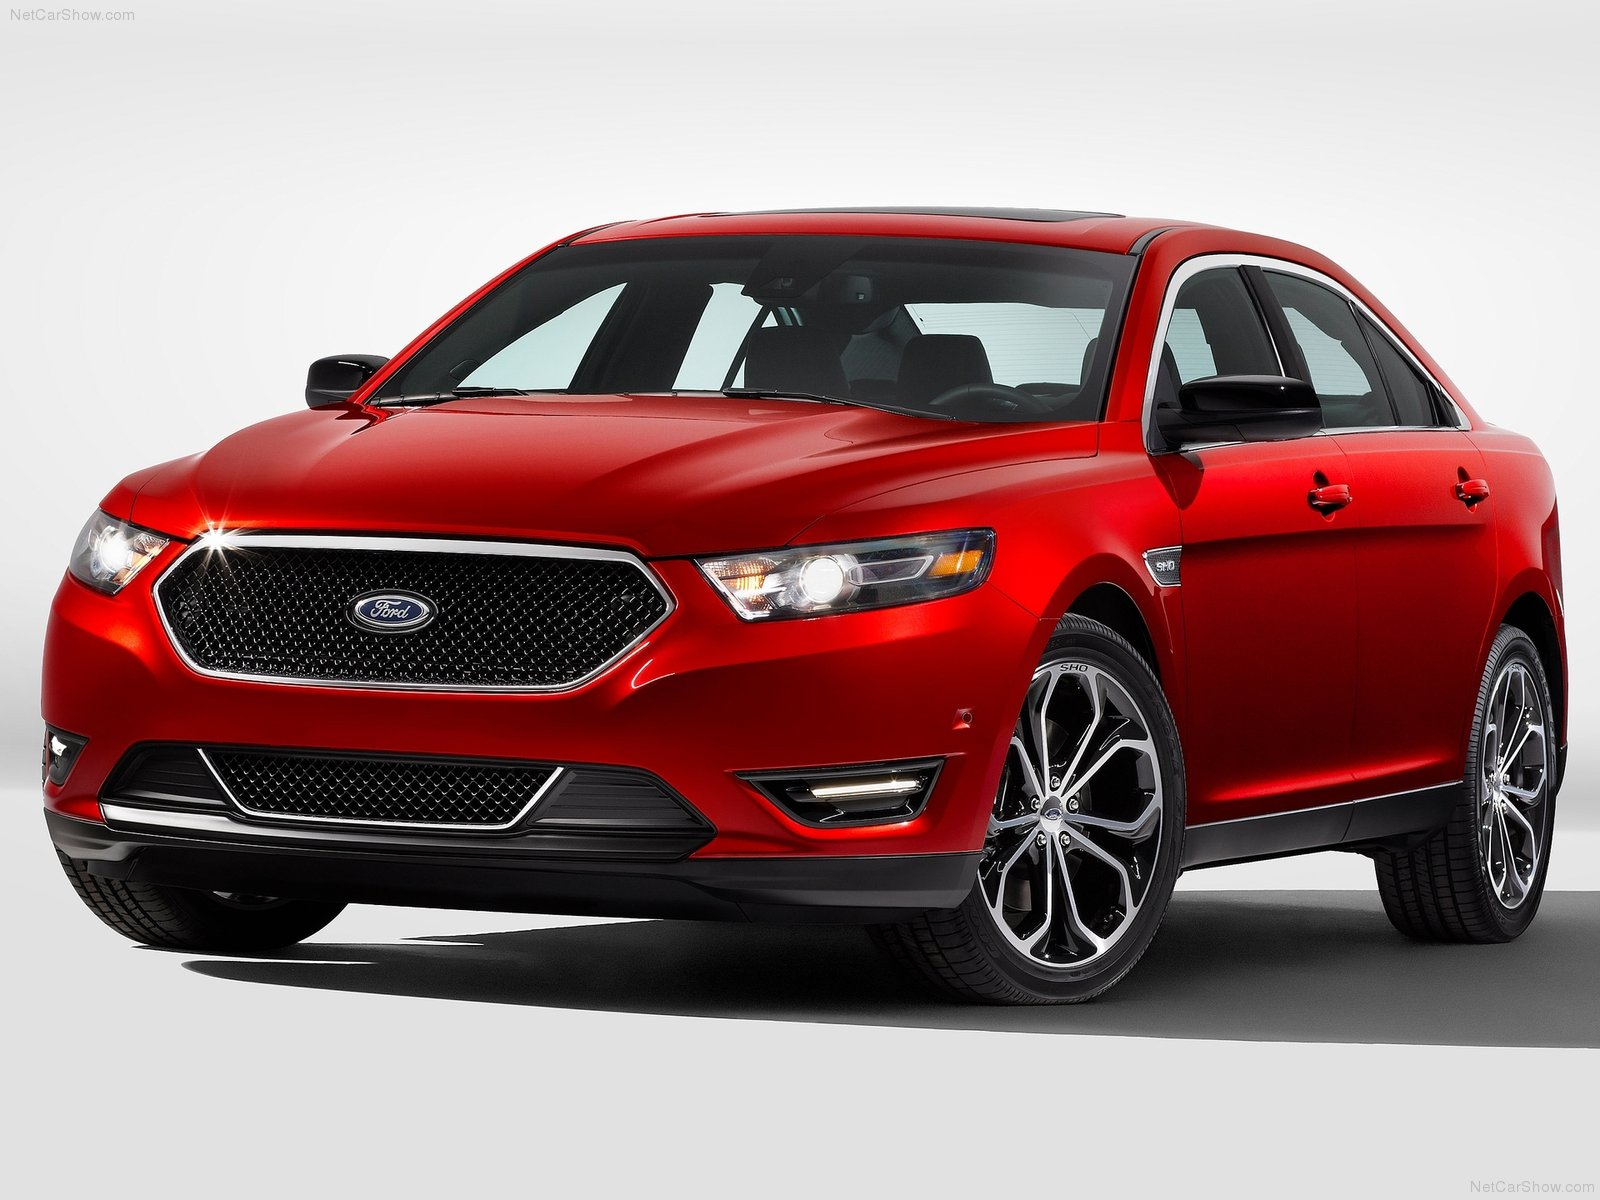 Ford Taurus SHO photo 80030